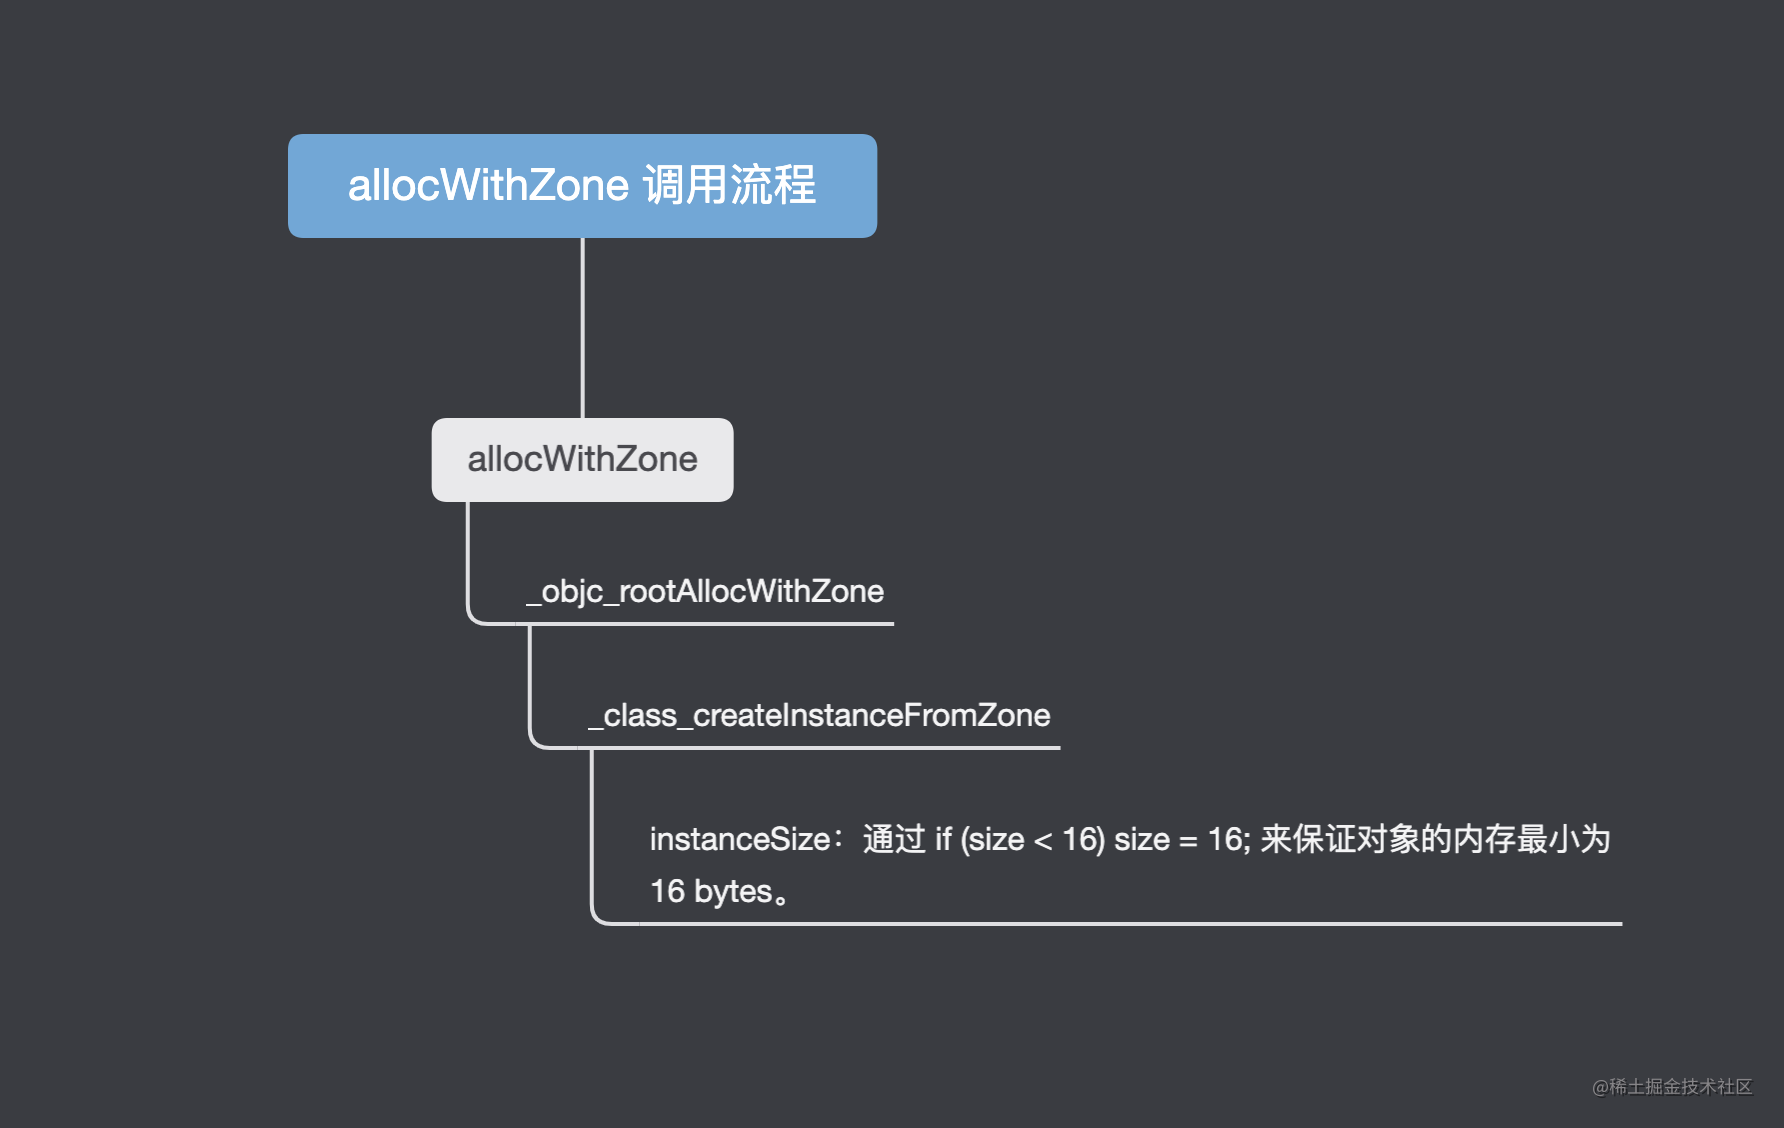 allocWithZone-flow.png